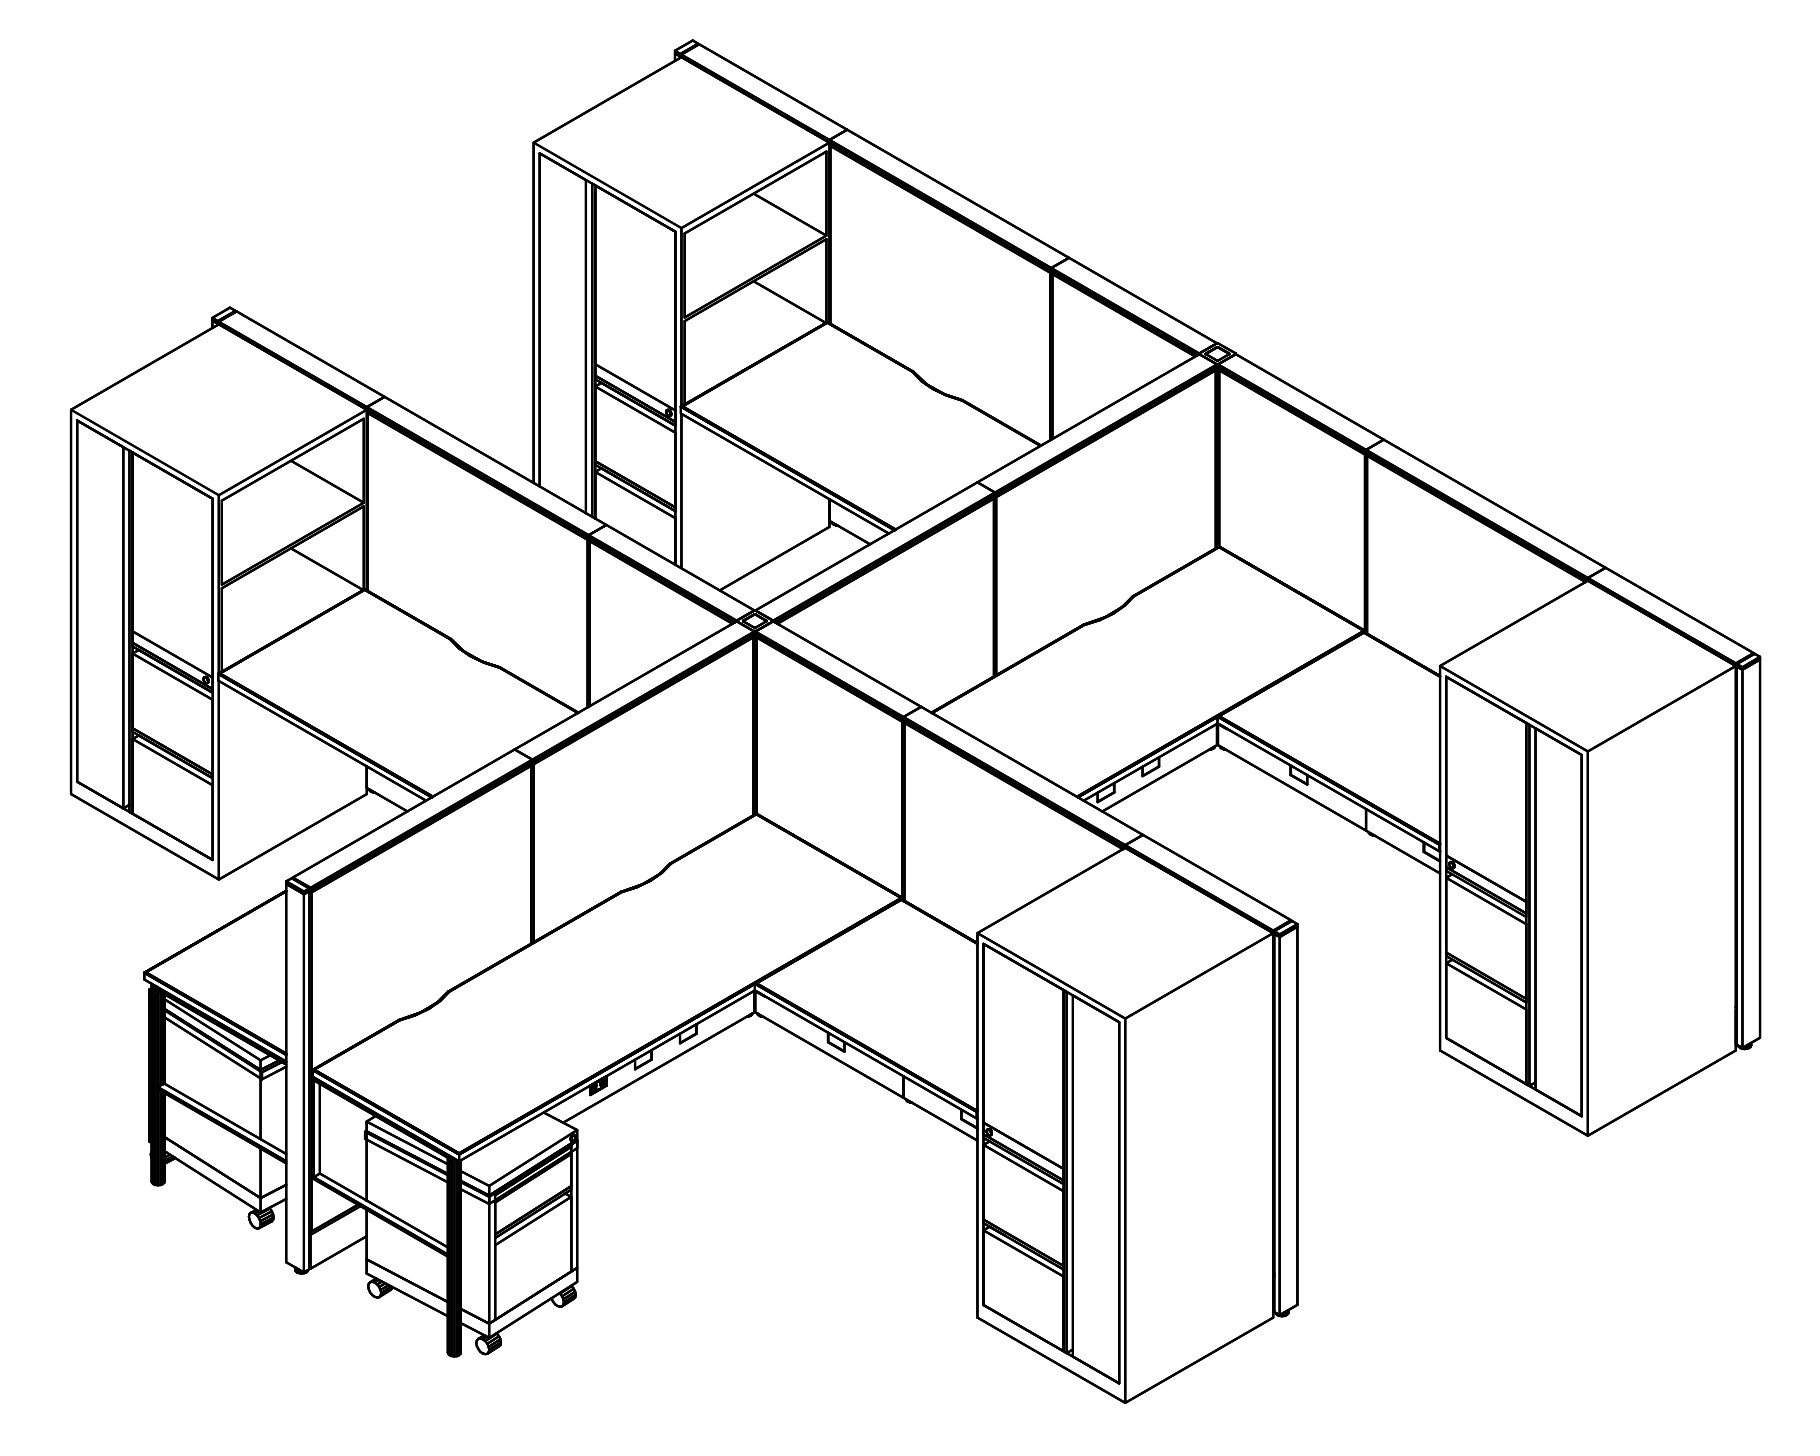 Technical drawing of Global's Evolve EV513 System, configured as a 4 pack of office cubicles. On the outer-sides of this arrangement is a full height cabinet with 2 drawers. Two shelves face to the user. A rolling pair of drawers is placed opposite.